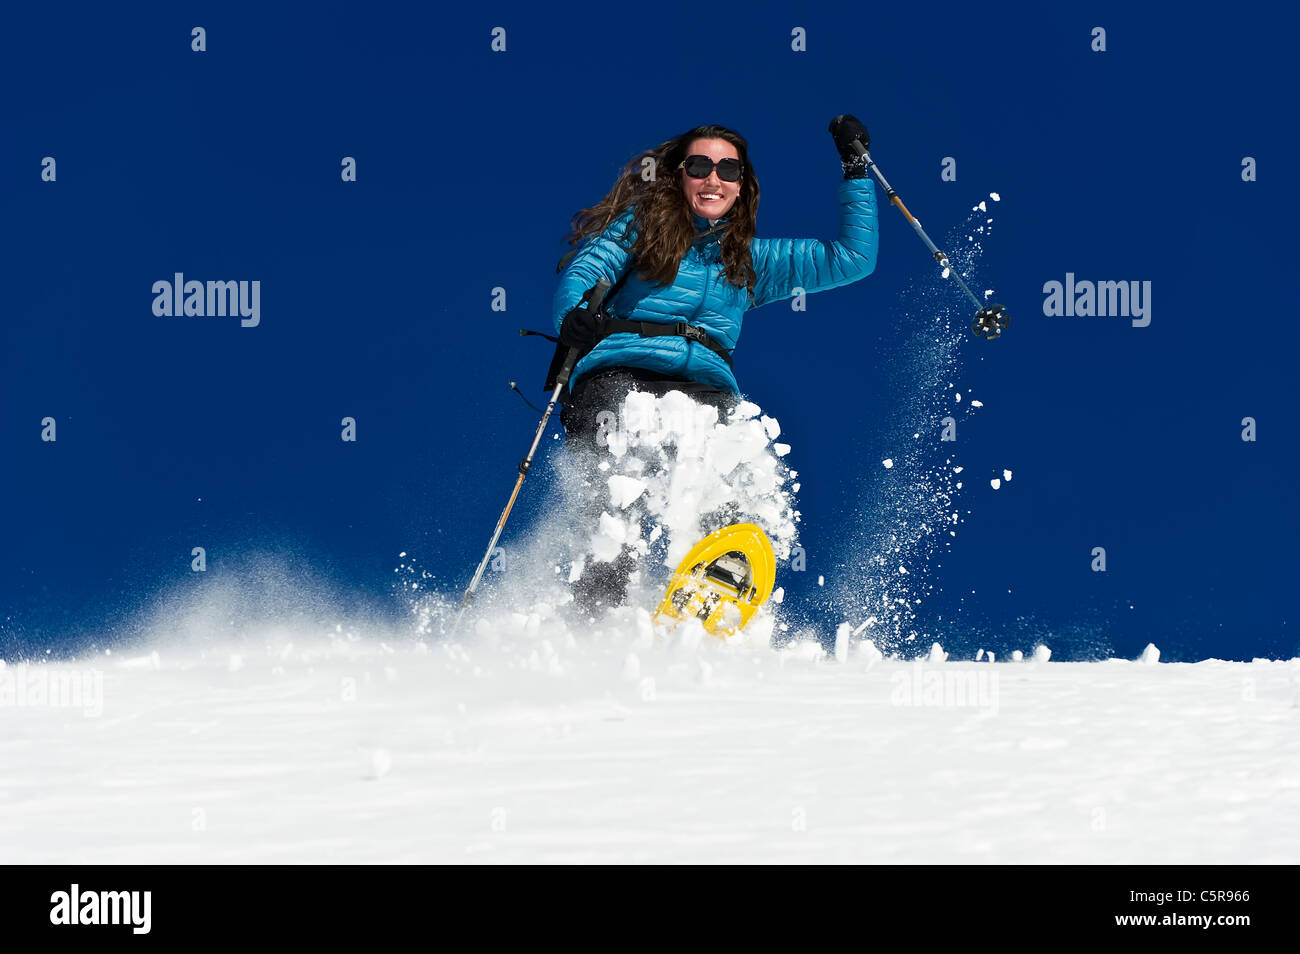 A woman having fun snowshoeing down a deep fresh snow field. - Stock Image